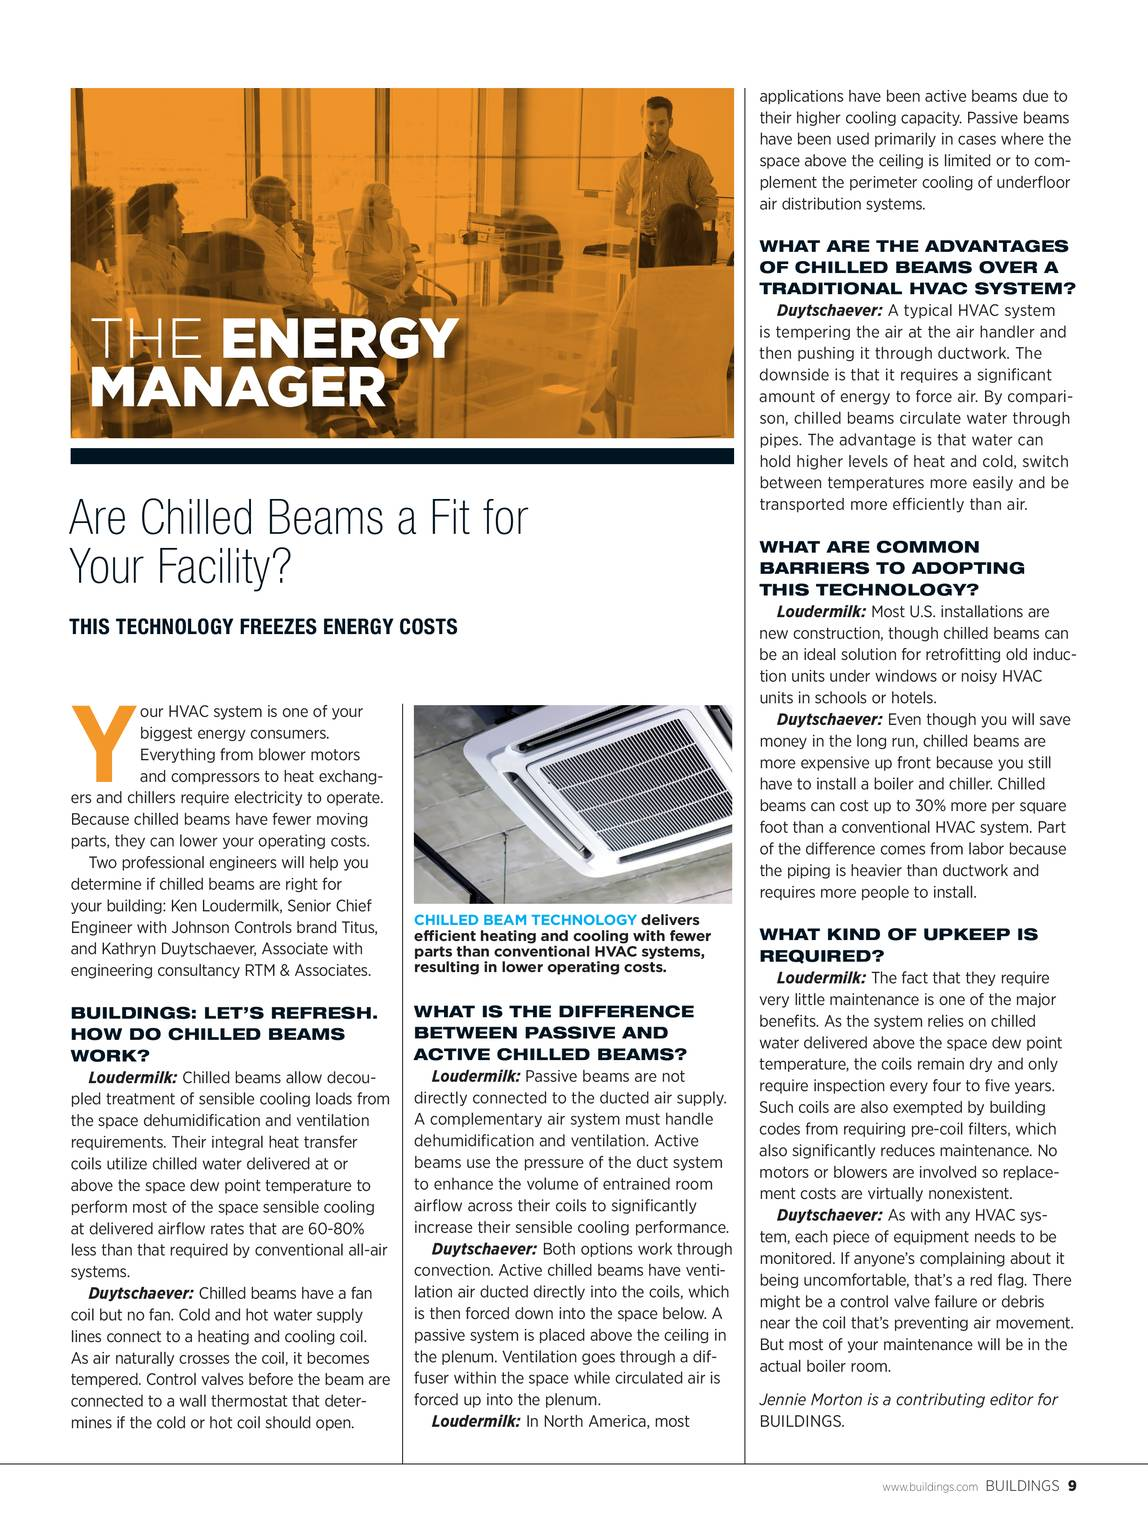 Buildings Magazine - March 2018 - page 8